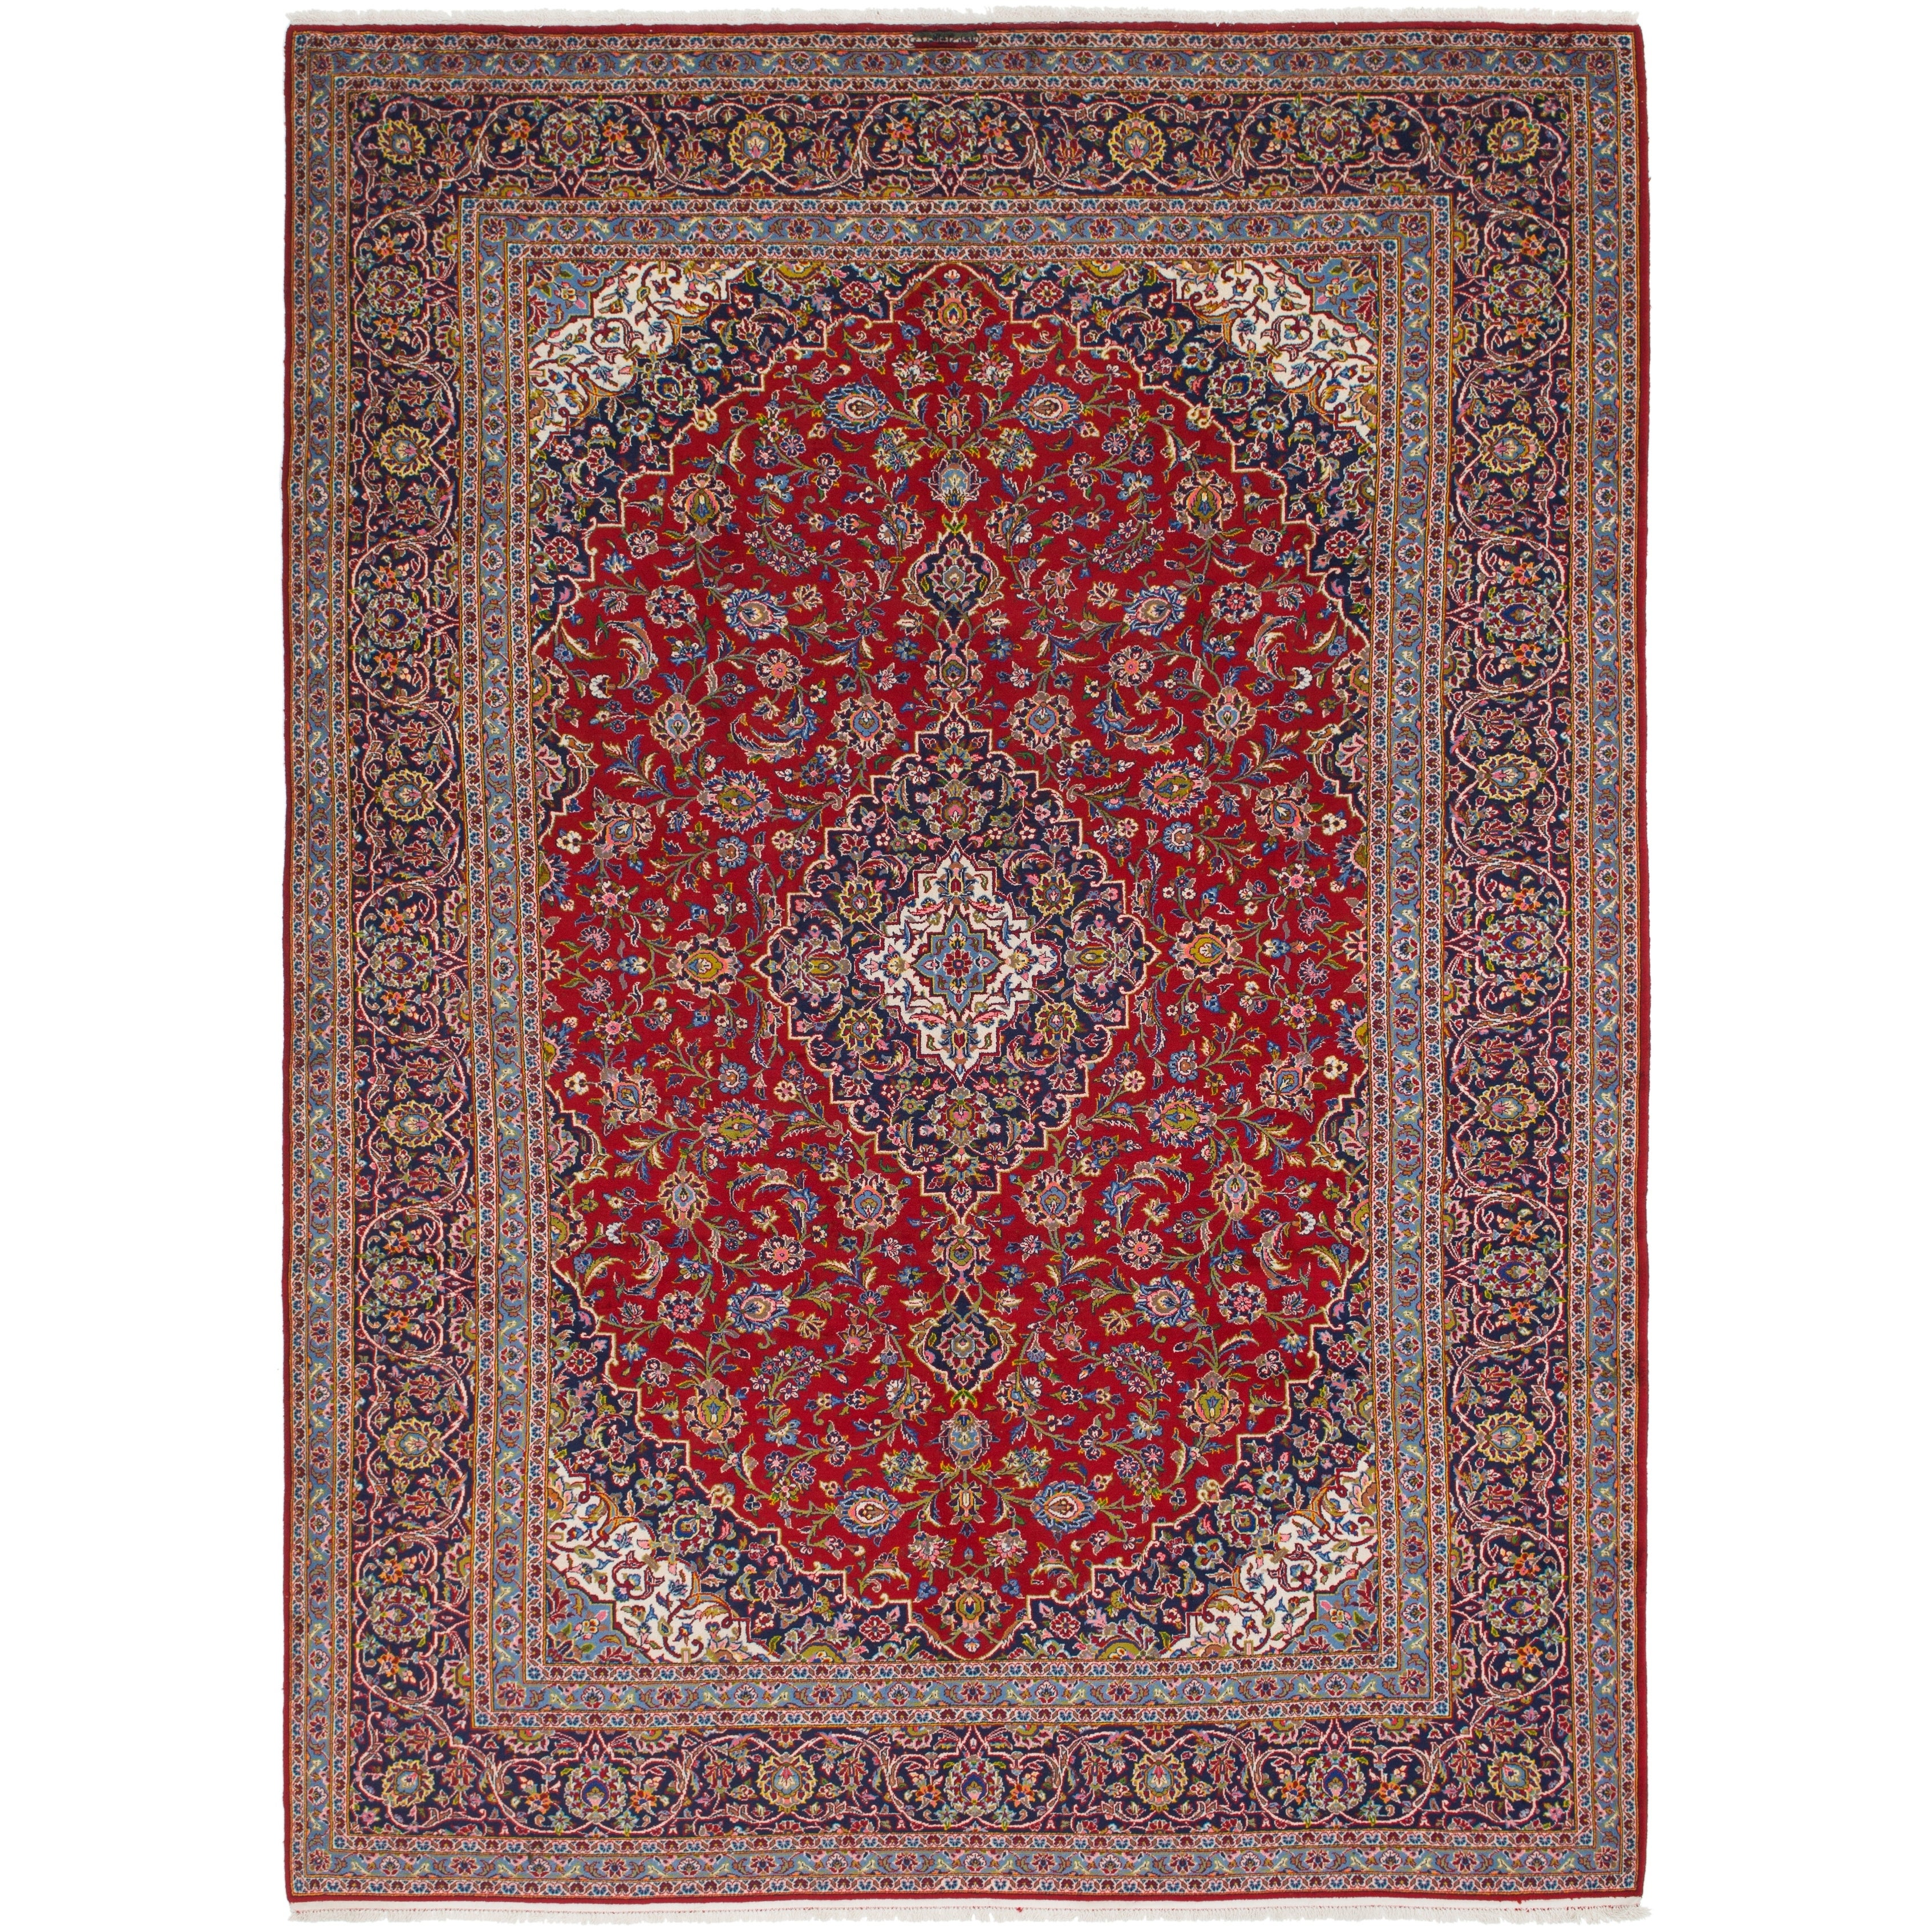 Hand Knotted Kashan Wool Area Rug - 9 9 x 13 8 (Red - 9 9 x 13 8)